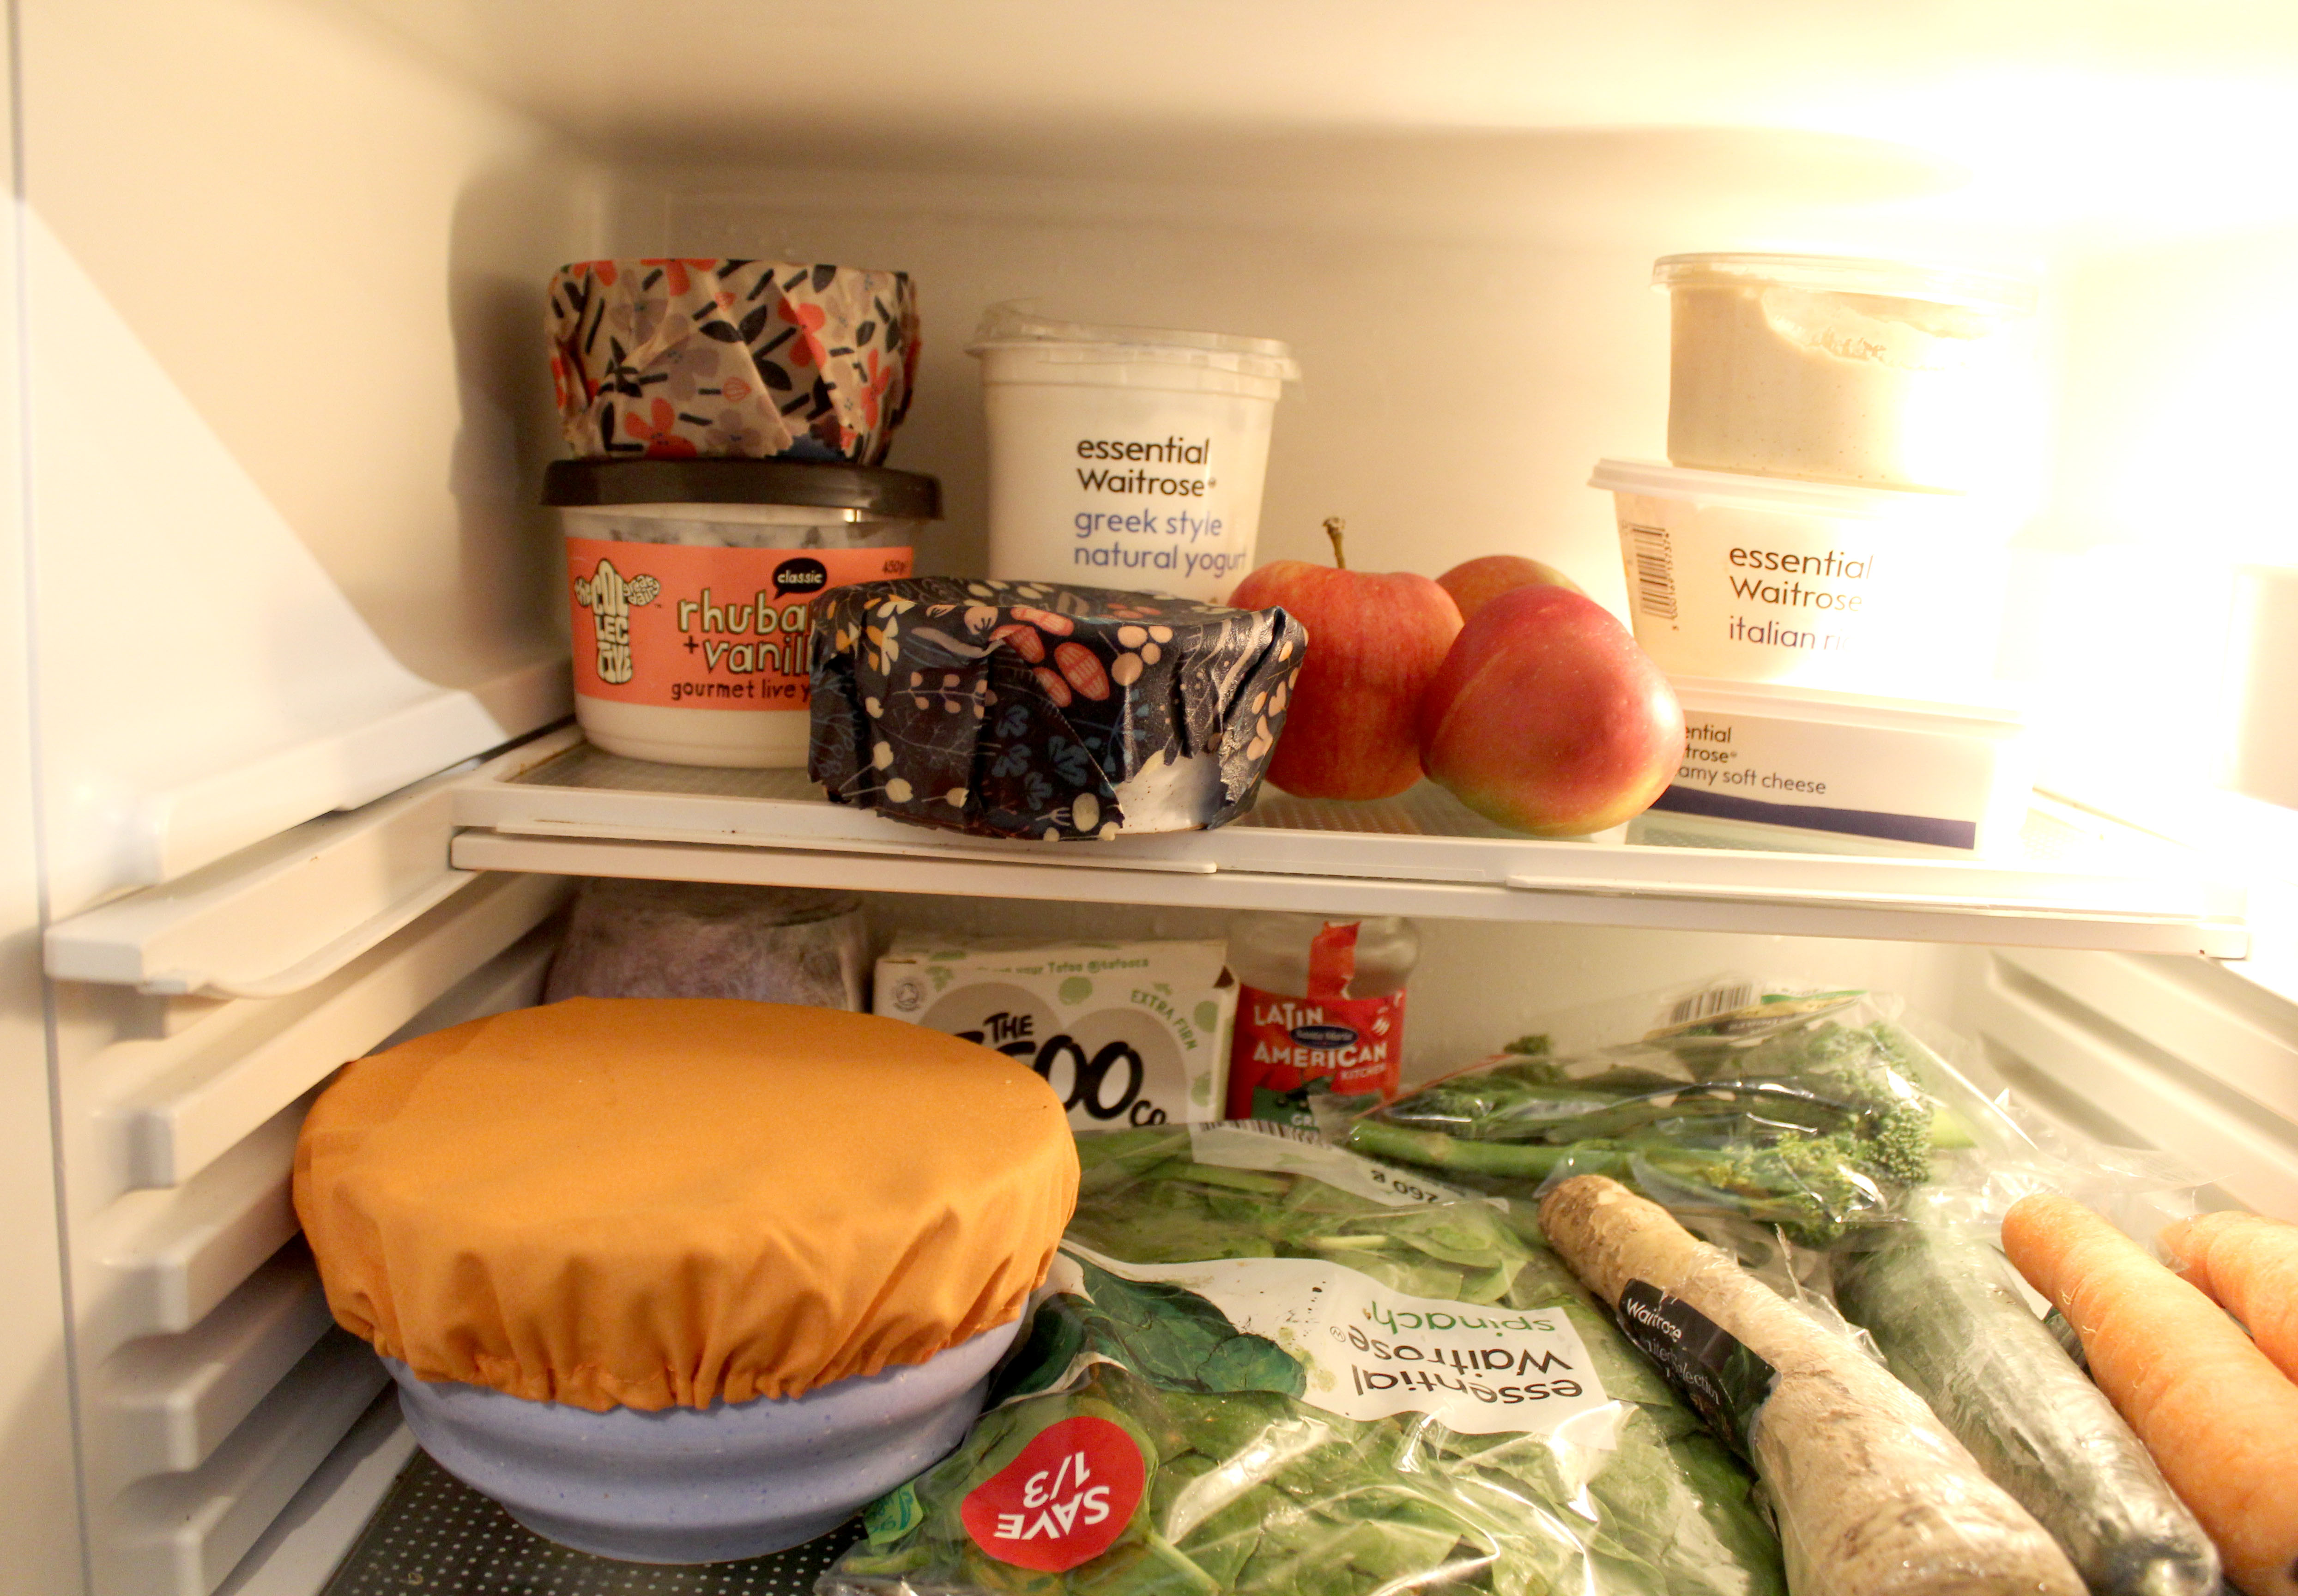 Beeswax wraps in fridge